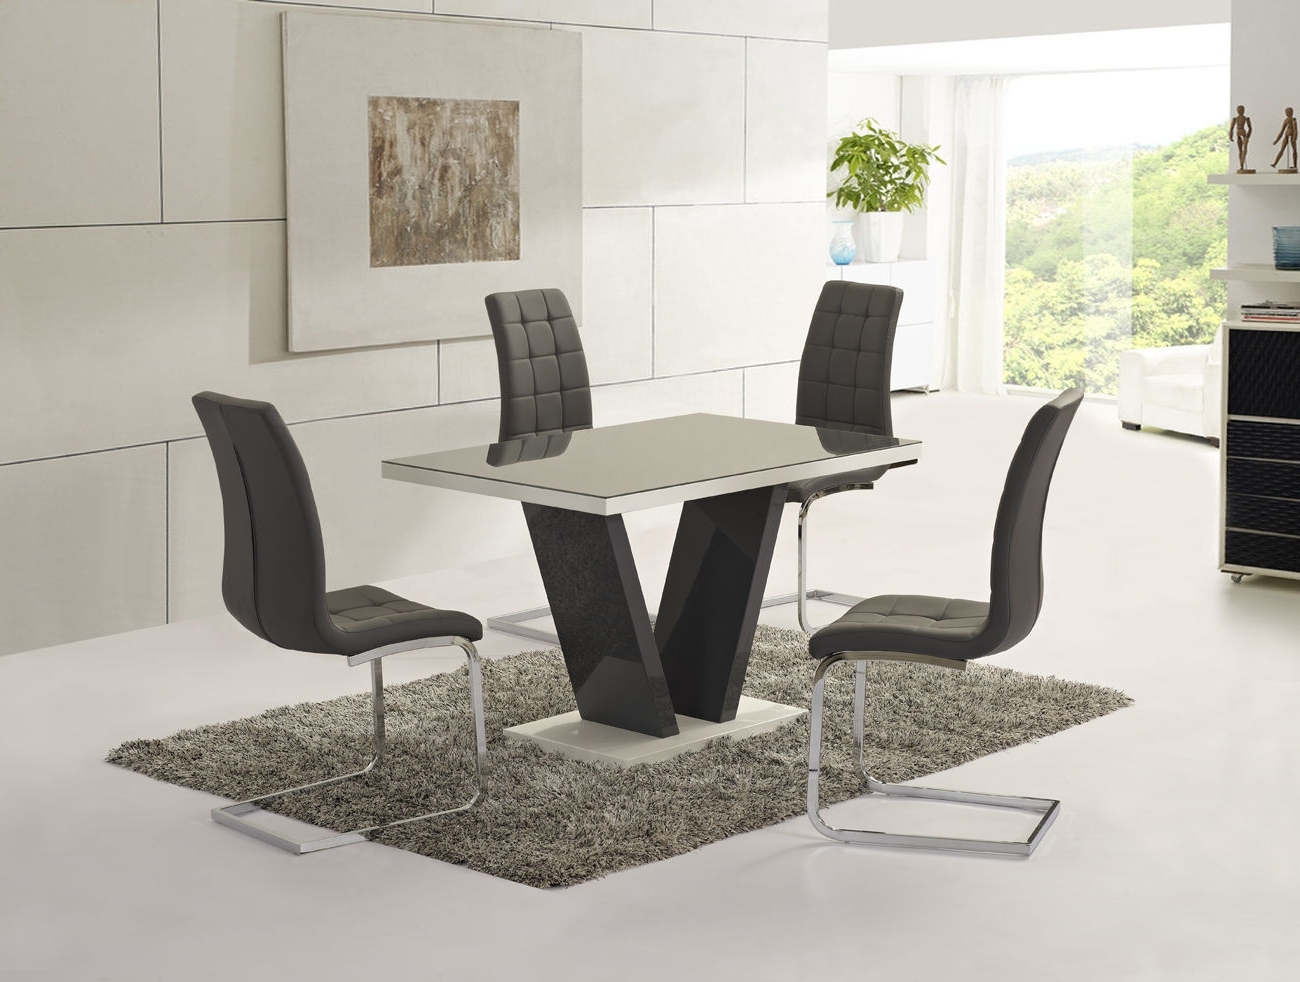 Gloss White Dining Tables And Chairs within Latest Ga Vico Gloss Grey Glass Top Designer 160Cm Dining Set - 4 6 Grey